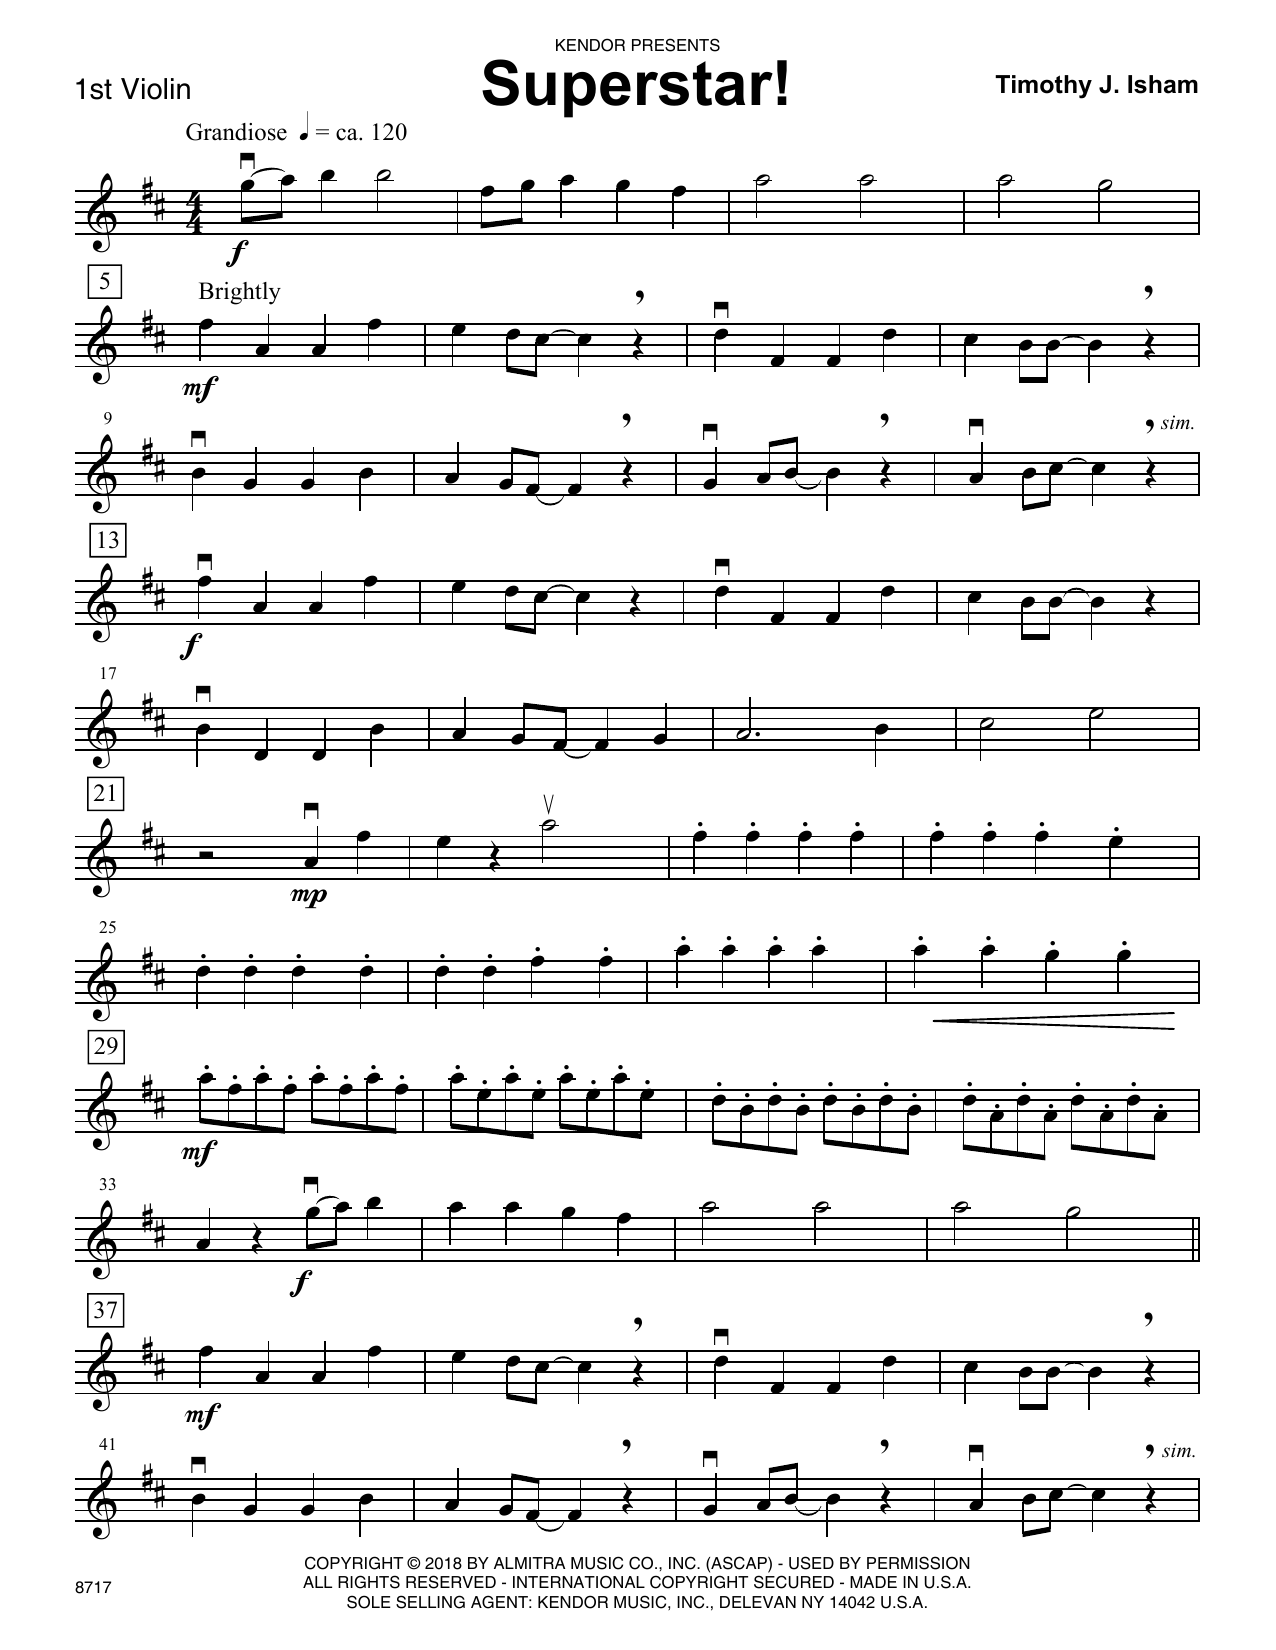 Timothy J. Isham Superstar! - 1st Violin sheet music preview music notes and score for Orchestra including 2 page(s)